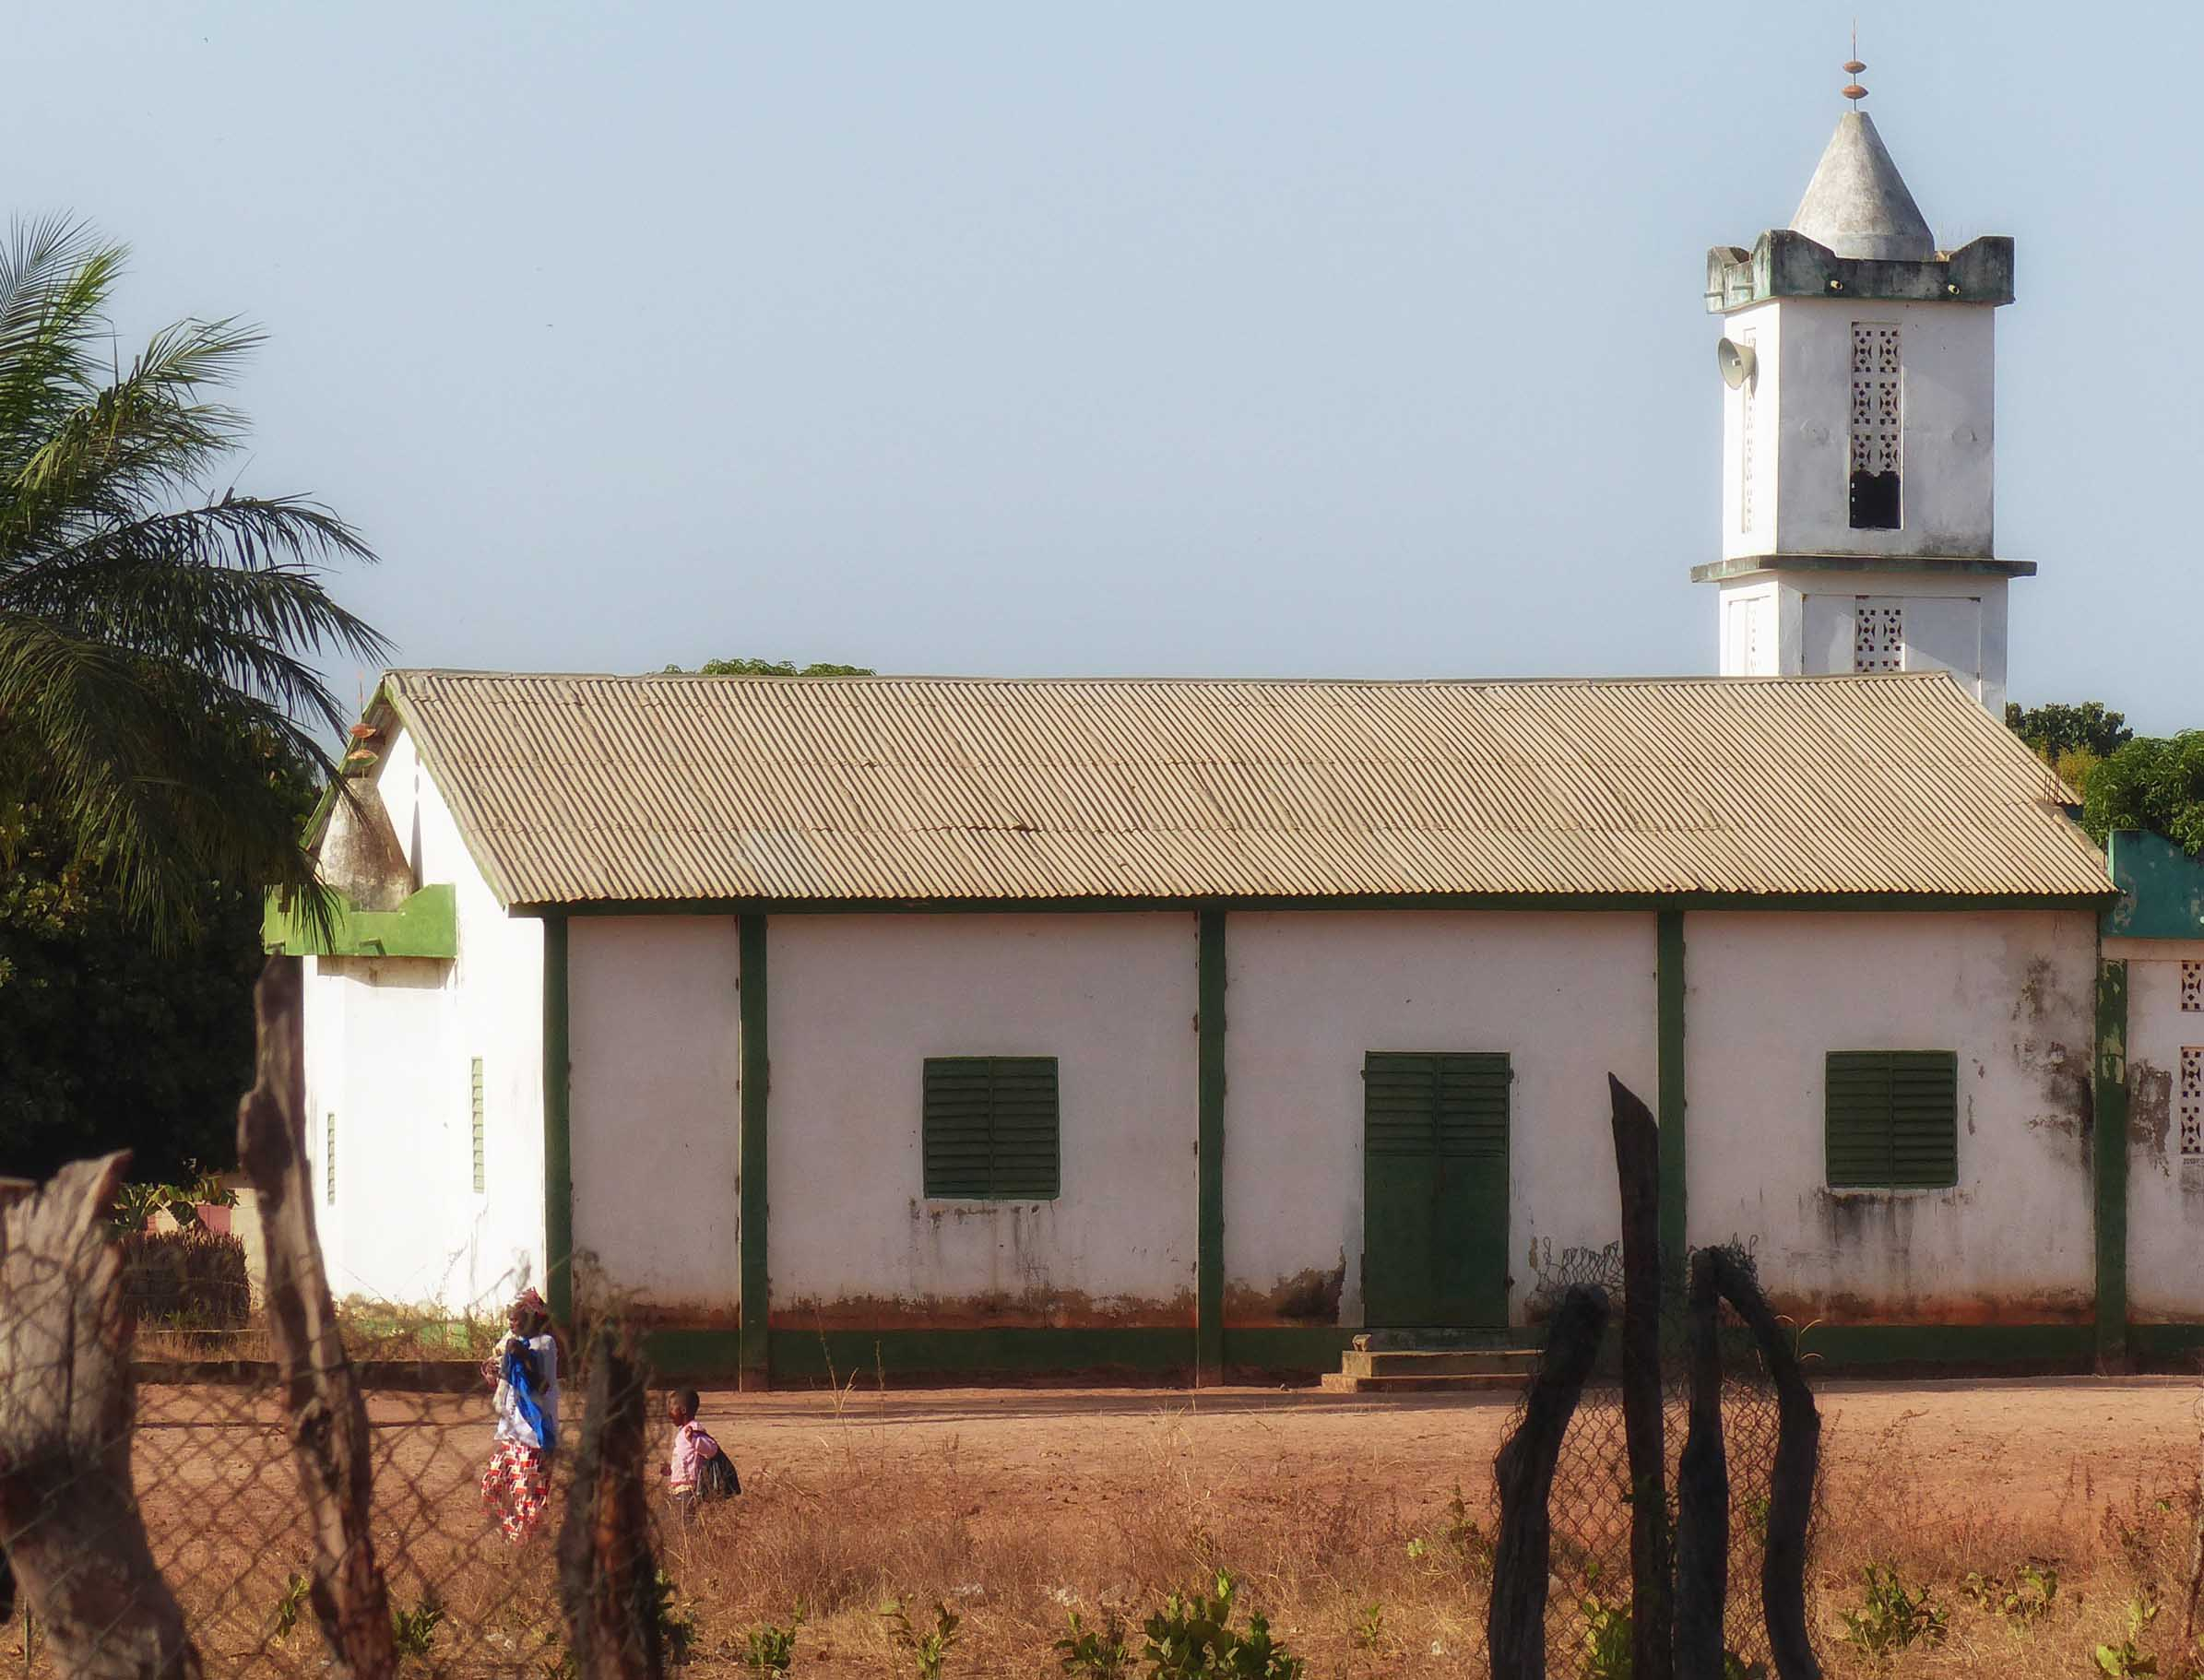 White church with corrugated iron roof